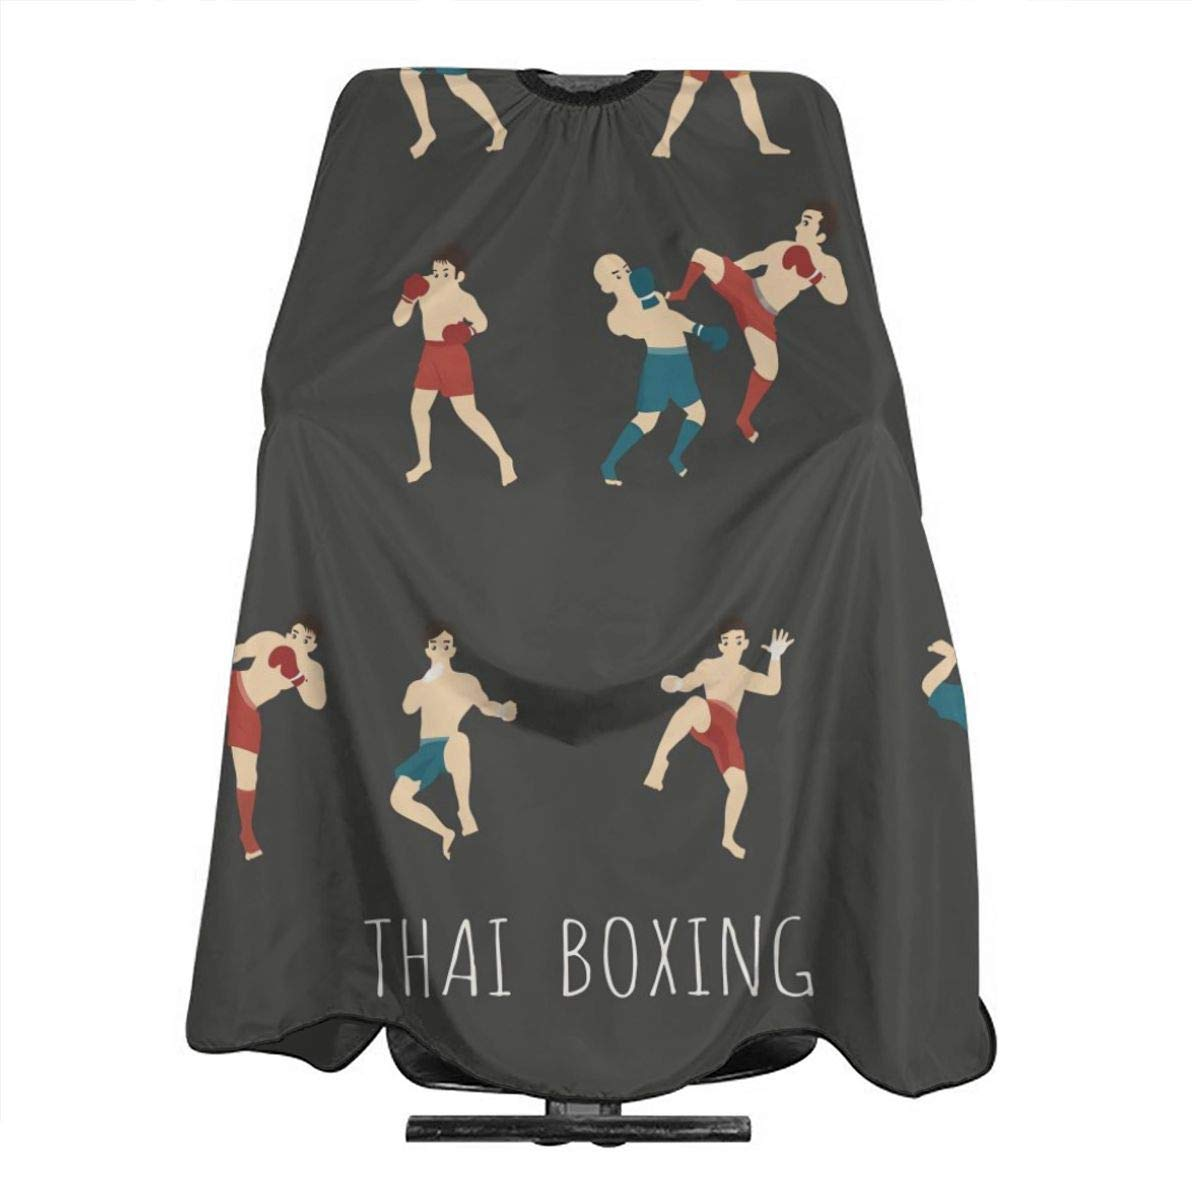 Professional Barber Cape Salon Hair Styling Cutting Haircut Aprons Thai Boxing Martial?arts Capes For Proof Hairdresser Coloring Perming Shampoo Chemical 55